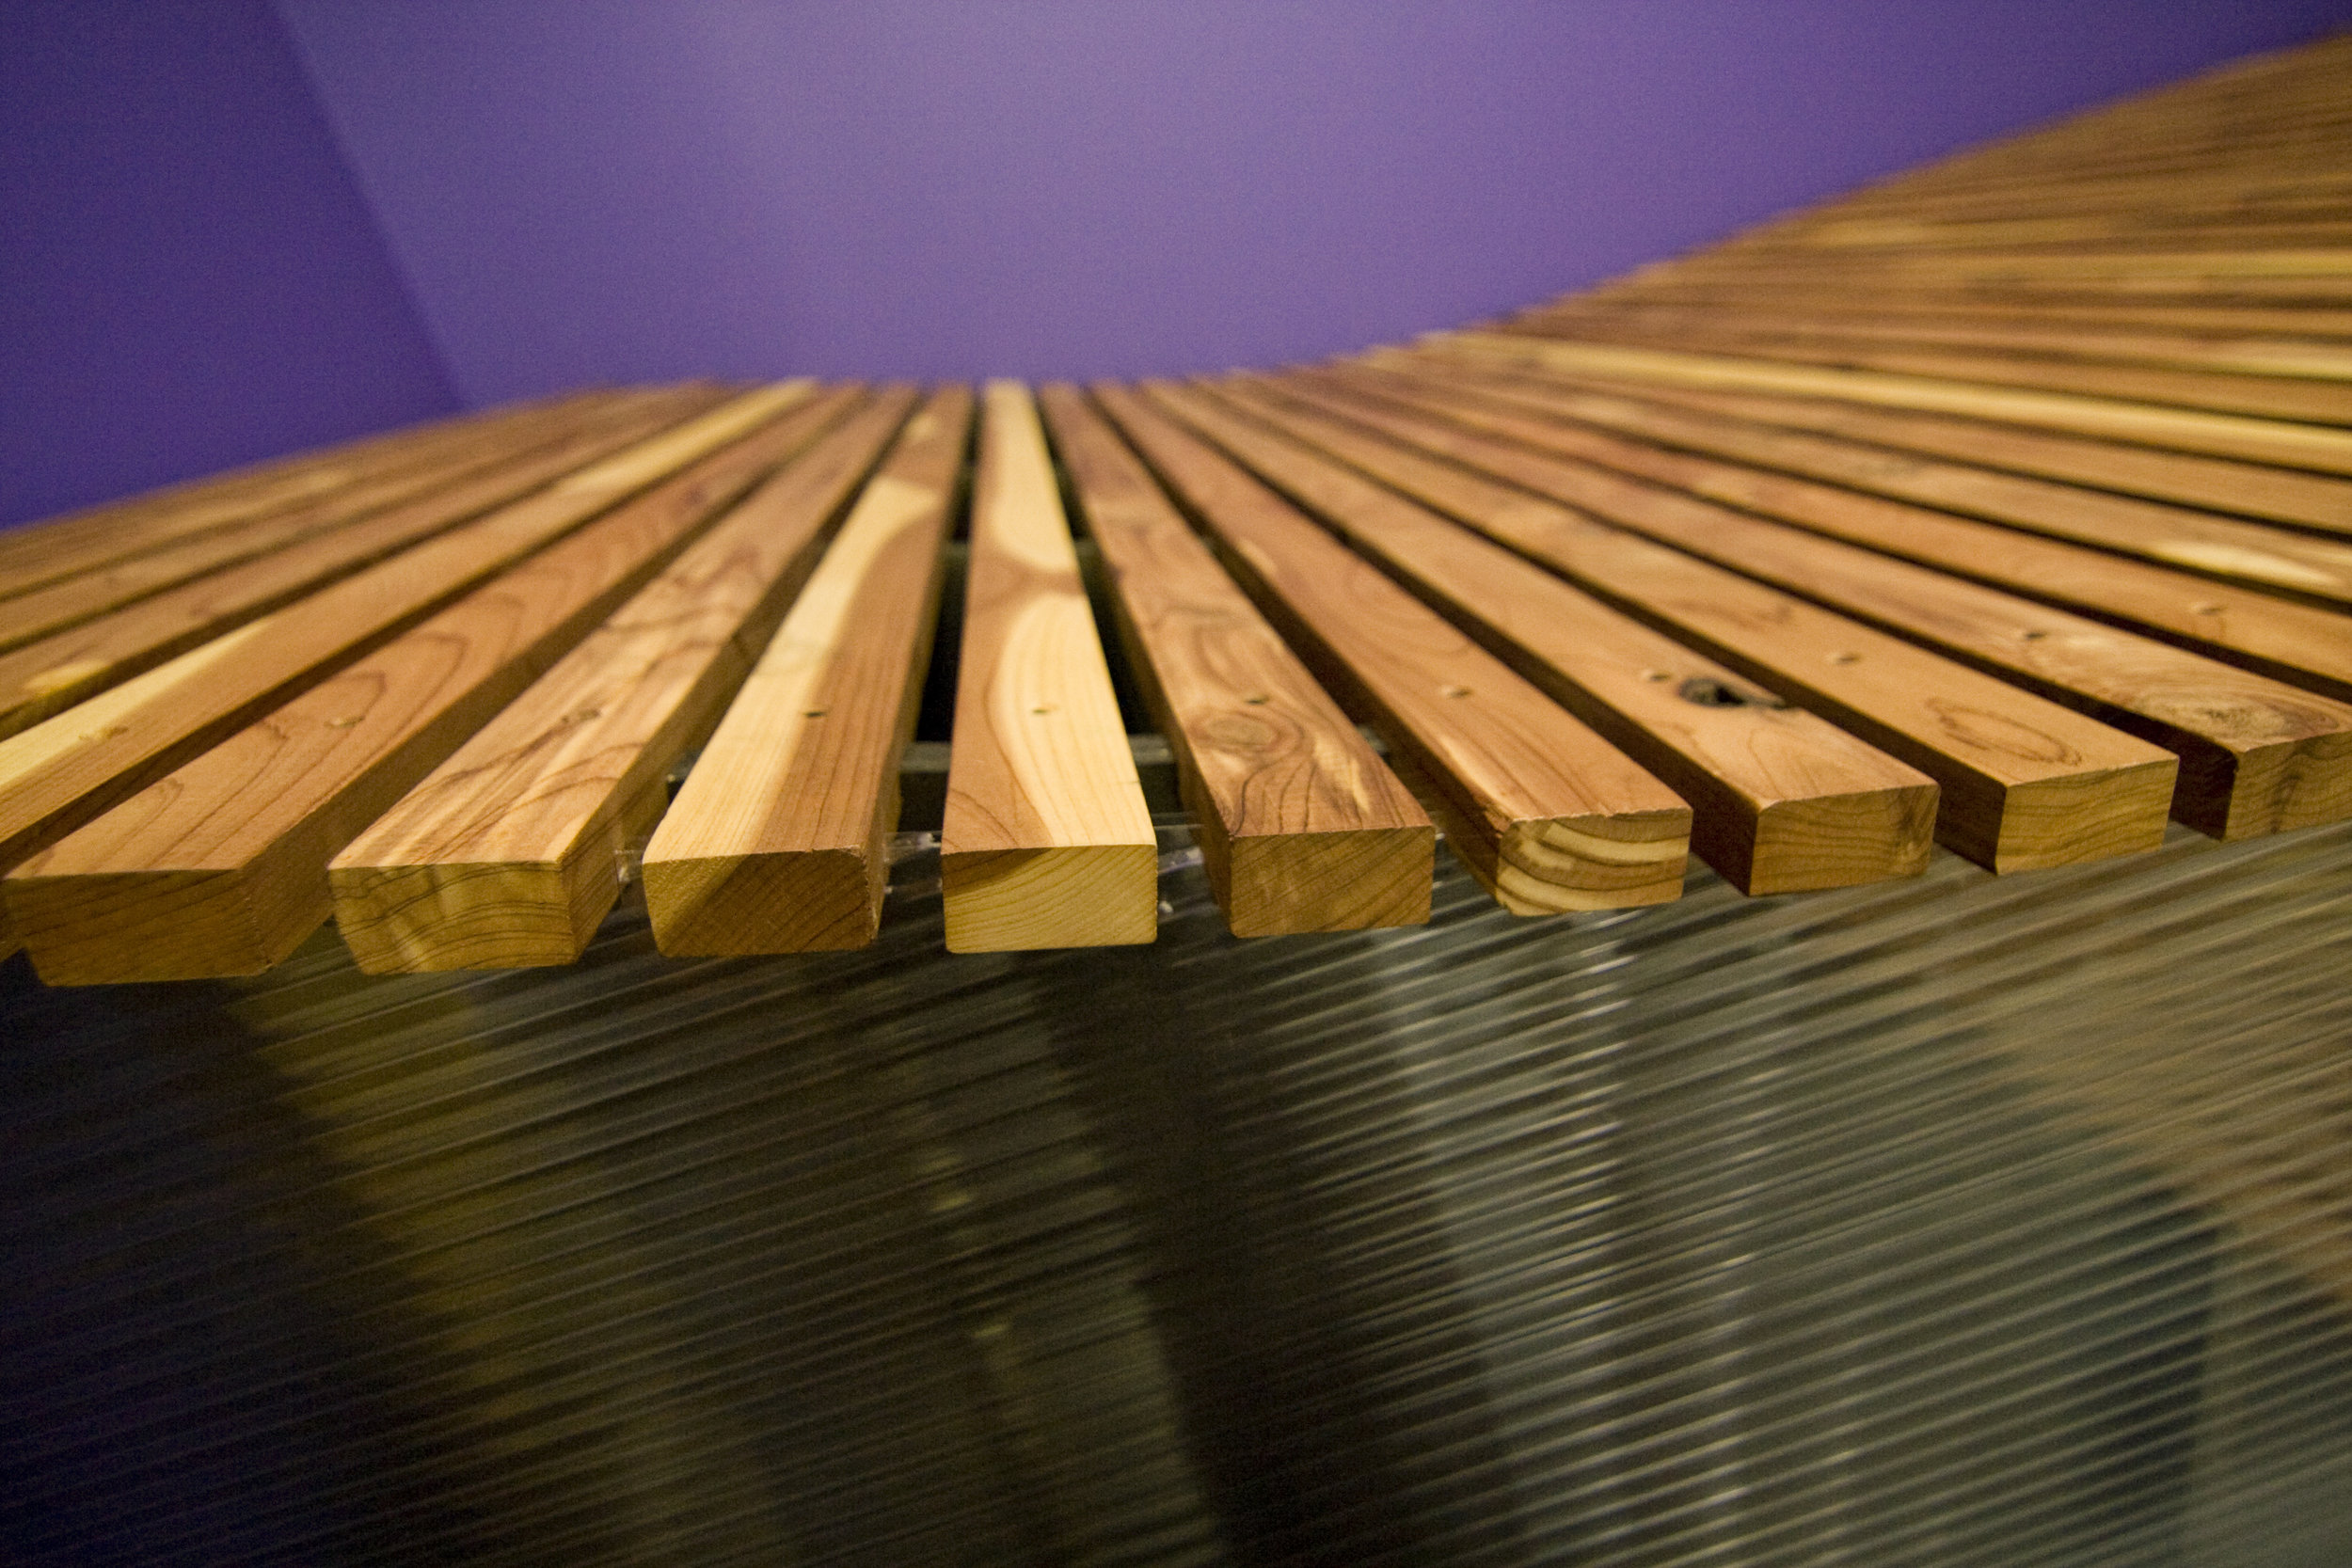 The cedar slats perfectly lined up with some grain matching.